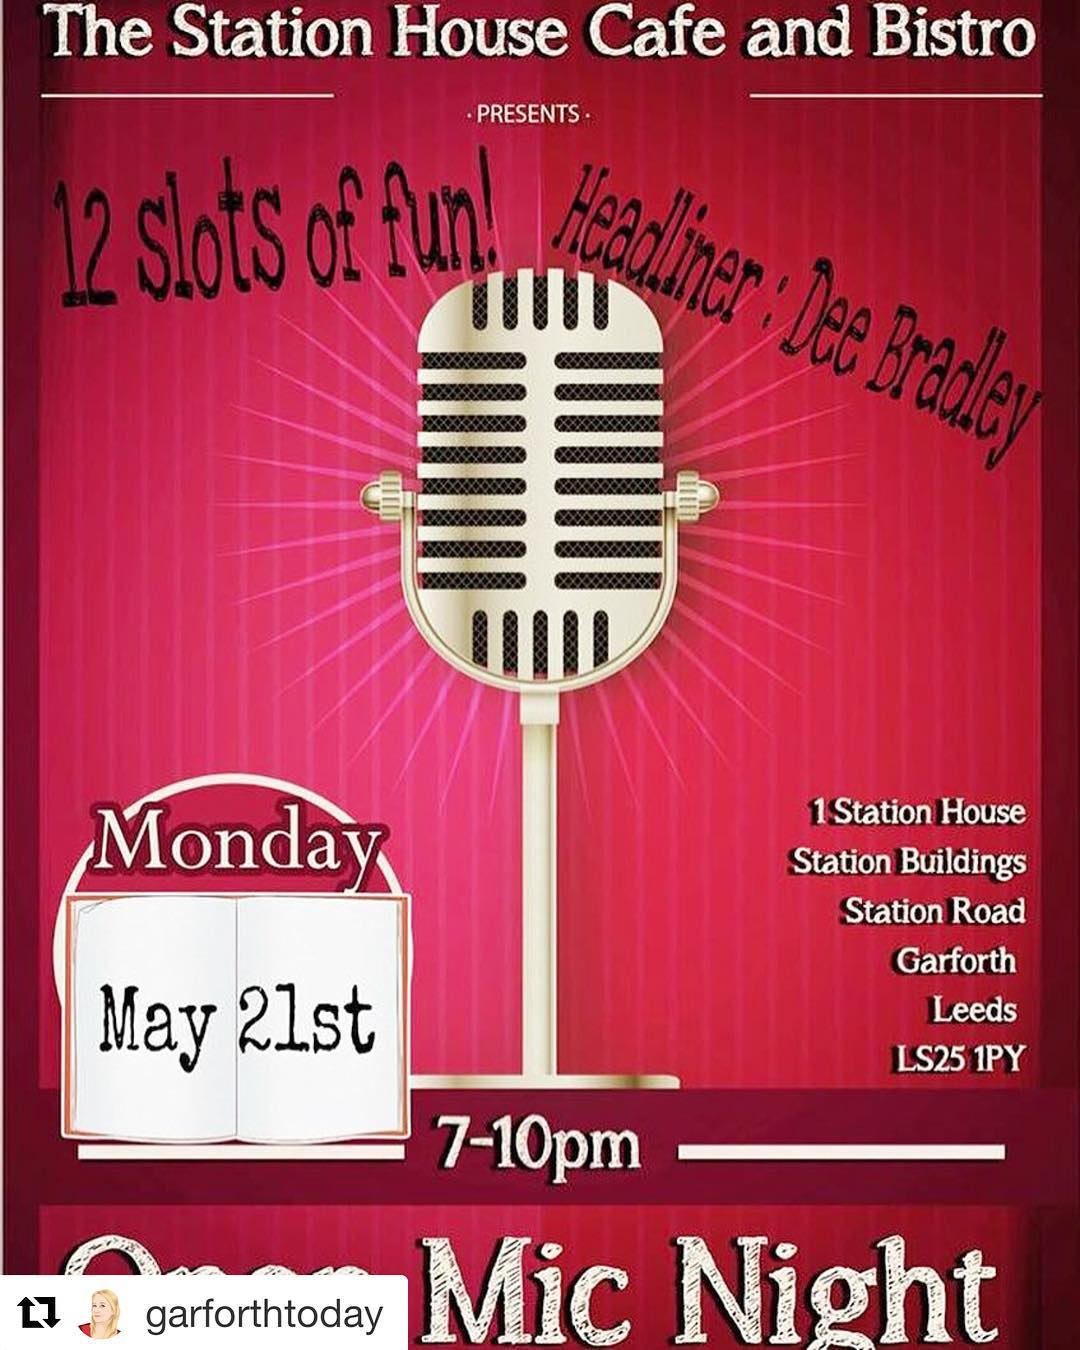 🎤🎼Open mic night at @thestationhousec on Monday 21! 🎙🎺 Food 🍕 will be served between 6pm -7 pm 👨🏻‍🍳 🎶 The event will start at 7 pm and finish at 10.00pm! 🎵  We look foward to seeing you all! ❤️🎙🎤🍕 . . . . . . . . . #garforth #leeds #manchester #openmicnight #🎤 #sing #singing #happy #happydays #happynights #italianrestaurant #ristoranteitaliano #healthyfood #lovefood #foodlover #singlover